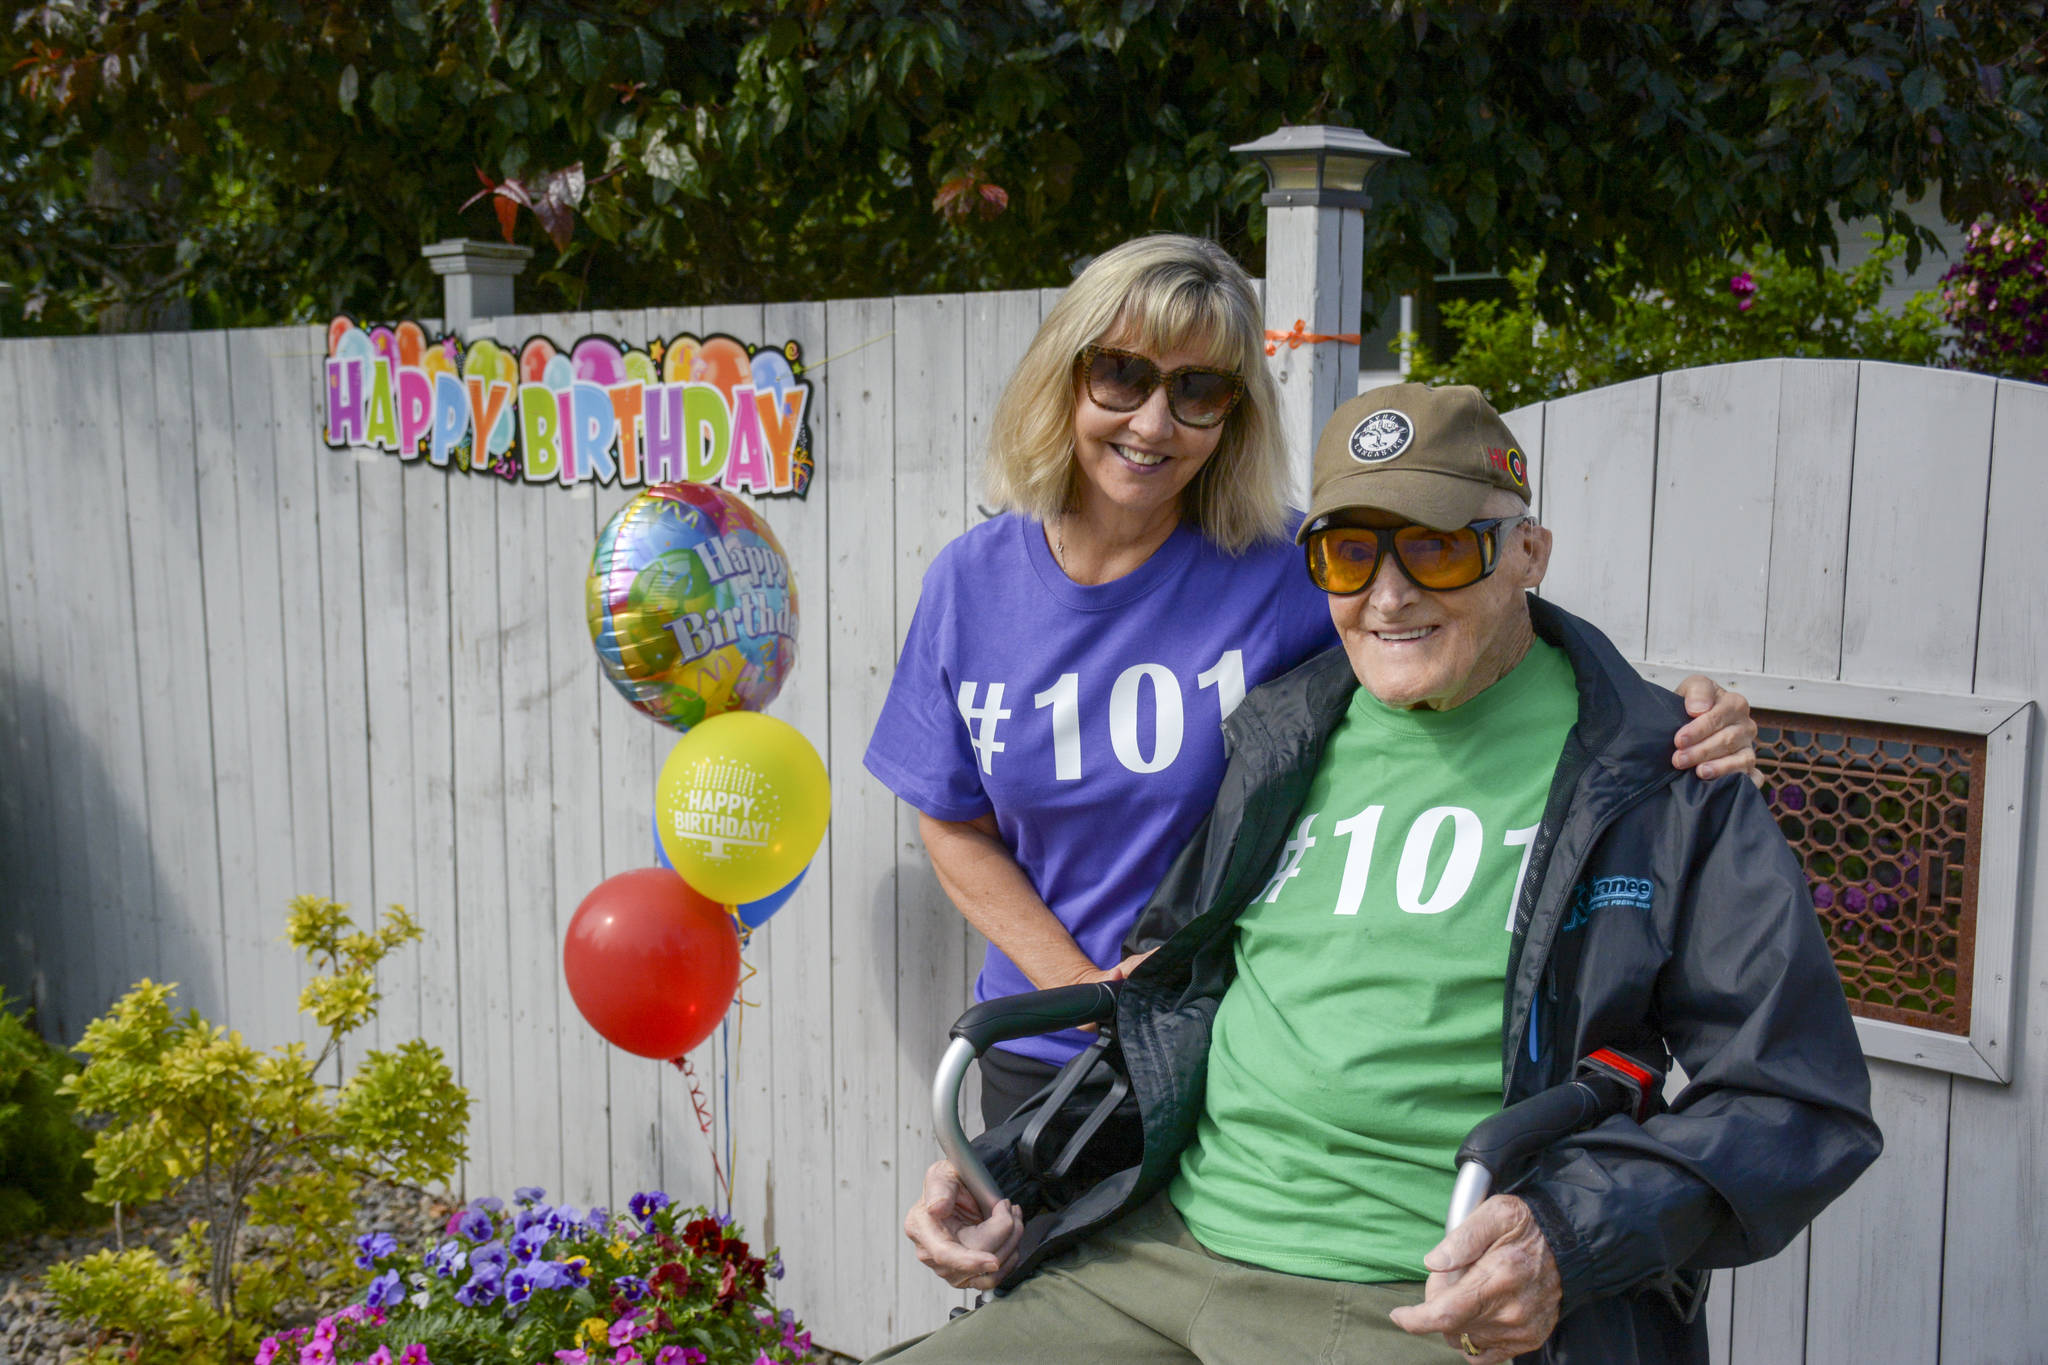 Nancy DeVuono poses with her father Chuck Page, a veteran and new resident of Creston, at the celebration of his 101st birthday on August 9. (Photo by Kelsey Yates)